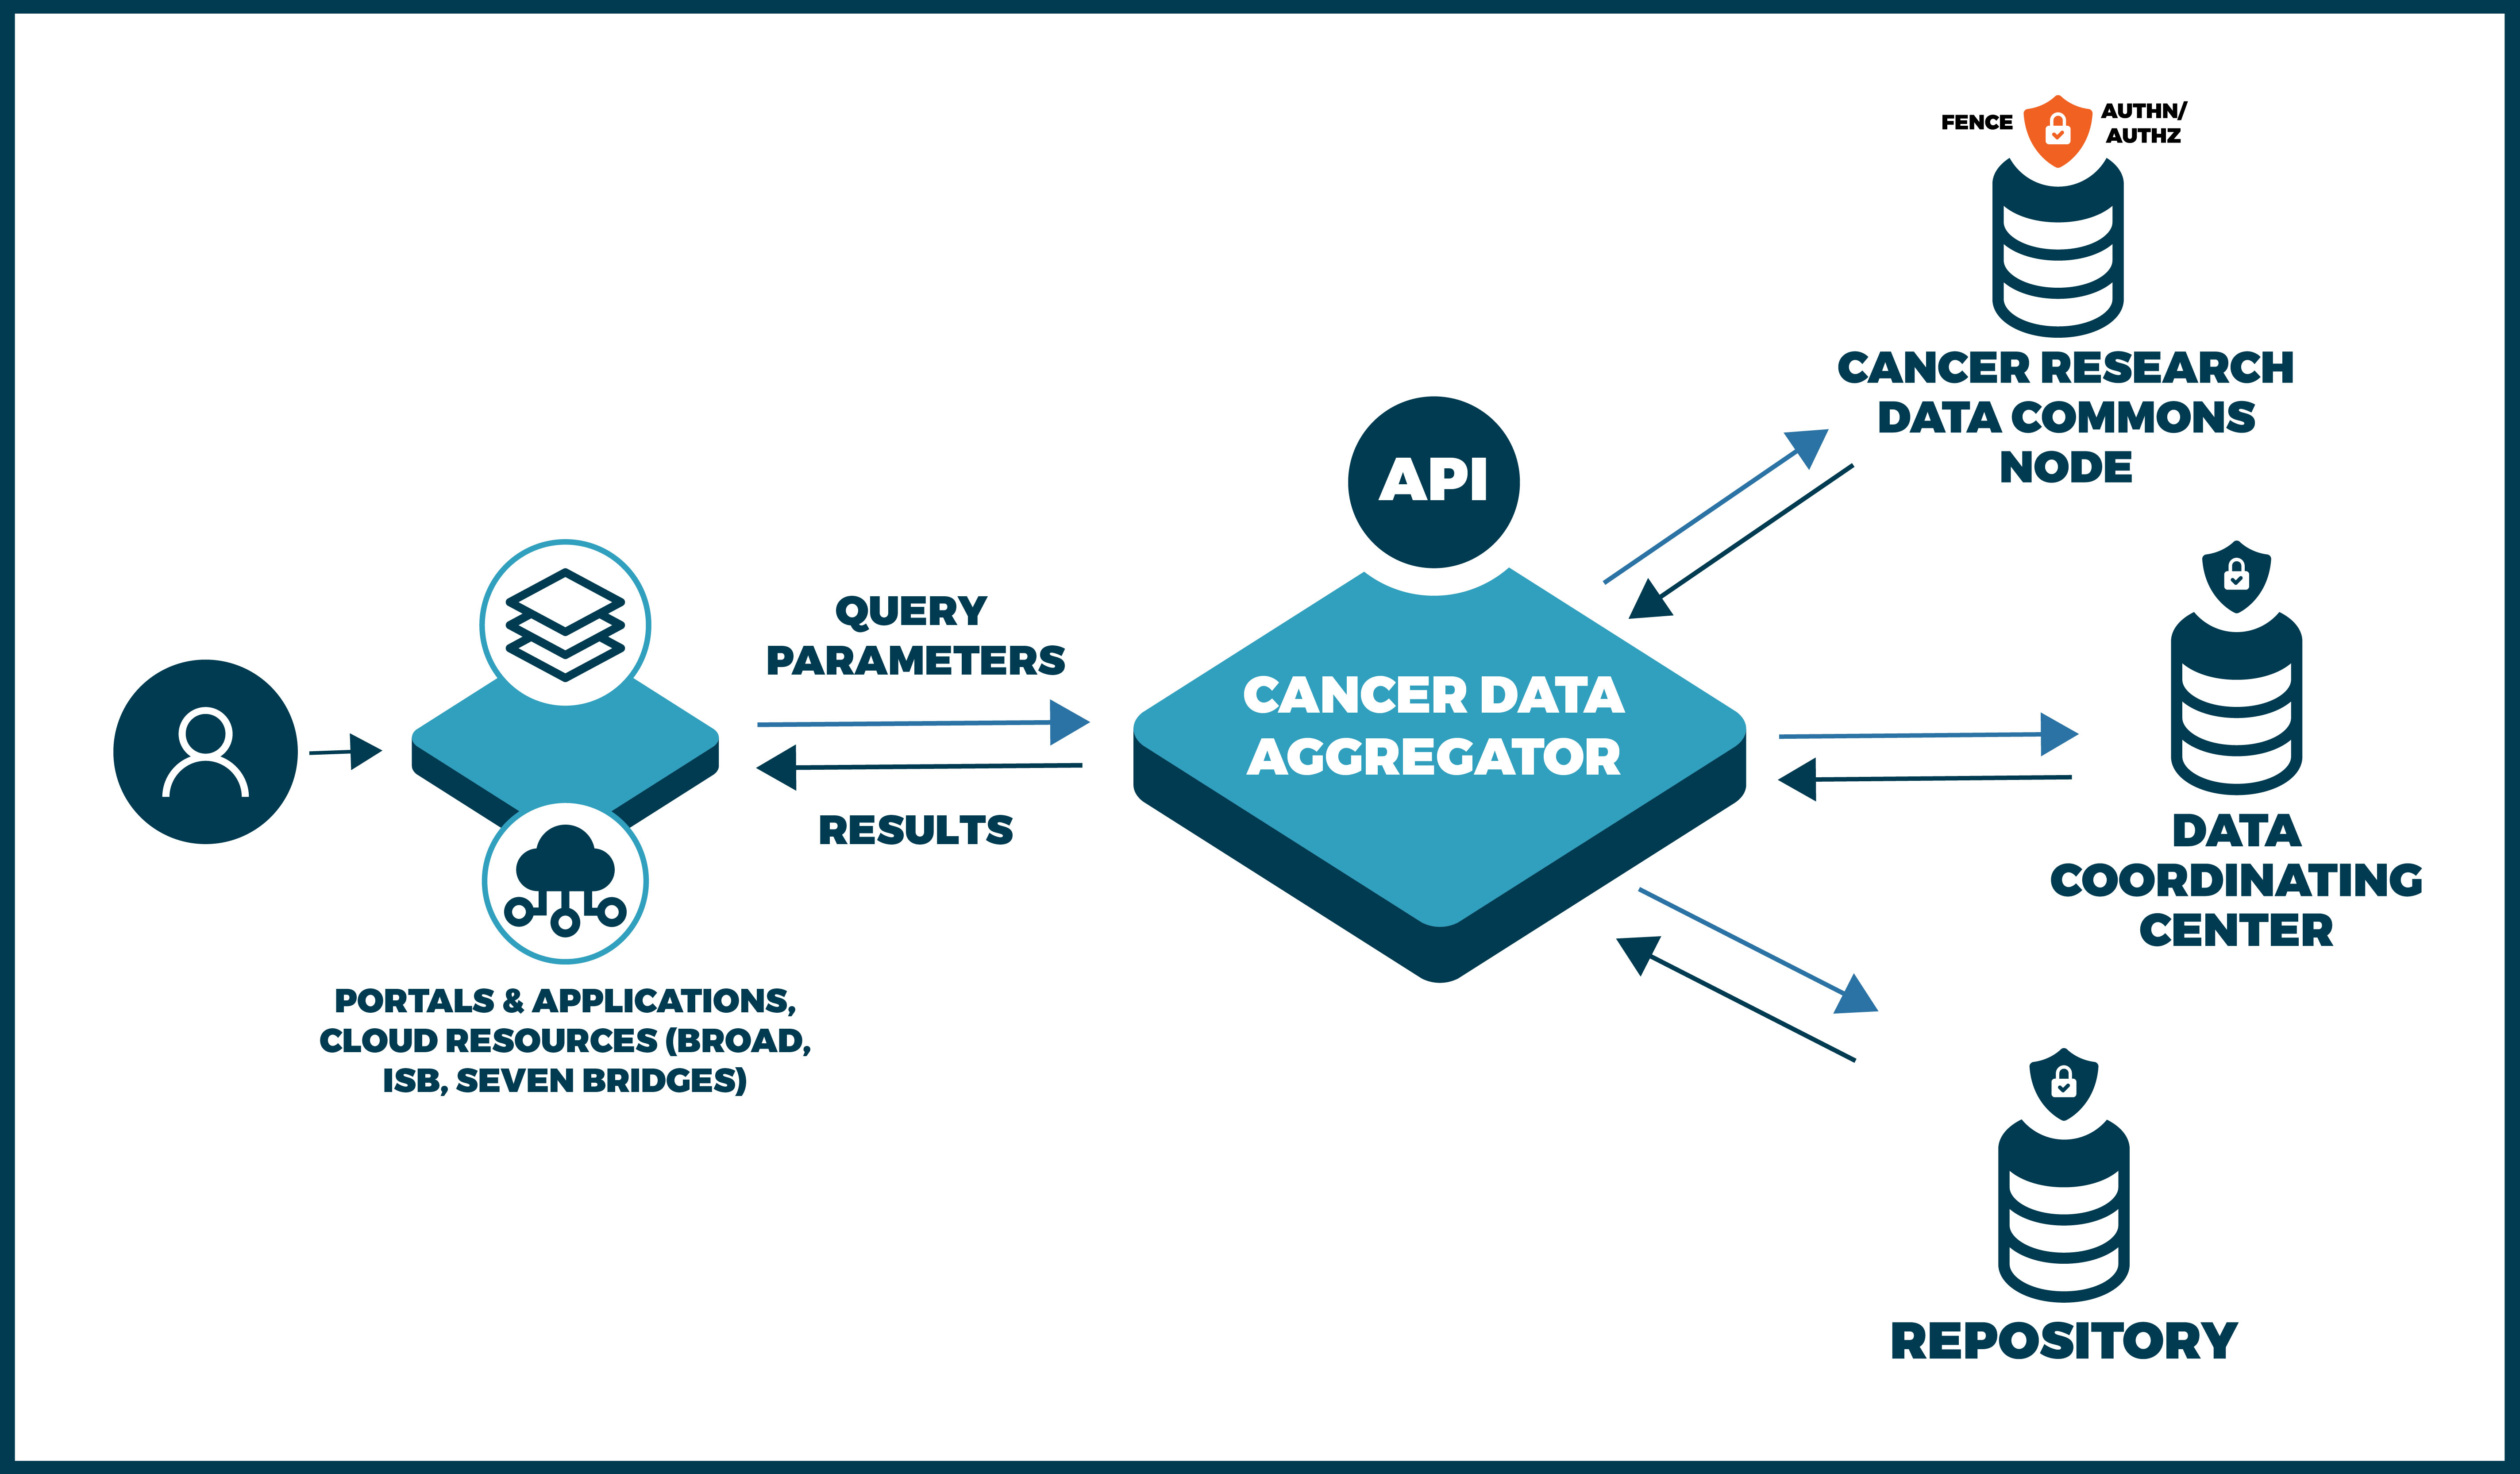 The functionality of the cancer data aggregator can be described as this: a user is currently on a data portal or application (for example one of the NCI Cloud resources from the Broad Institute, ISB, or Seven Bridges Genomics). That application will connect to the Cancer Data Aggregator through an API that allows users to query parameters for data sets. The aggregator then queries across the Cancer Research Data Commons (which will be secured by Auth/AuthZ authentication), NCI Data Coordinating Centers, and other NIH repositories, aggregating data that matches that query. The data will return to the aggregator to be transformed through a common data model. The aggregated data will then be displayed for the user on the portal or application where they initiated the query.